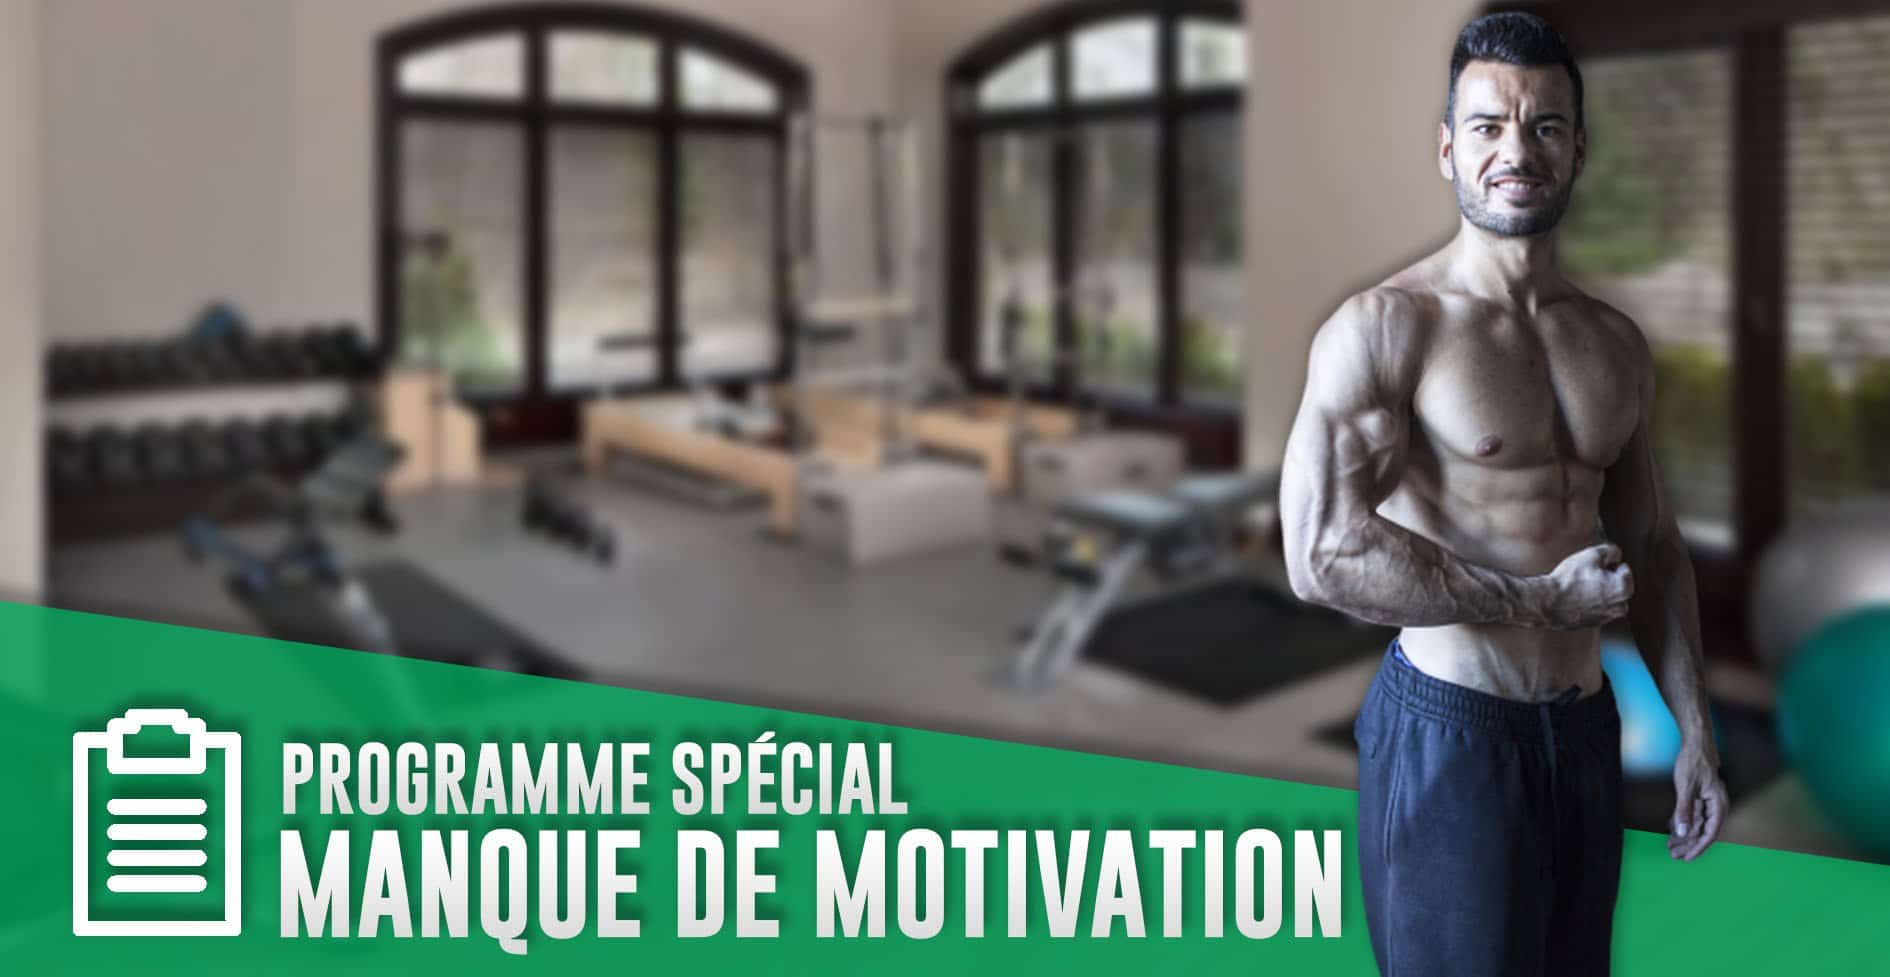 PROGRAMME MANQUE MOTIVATION